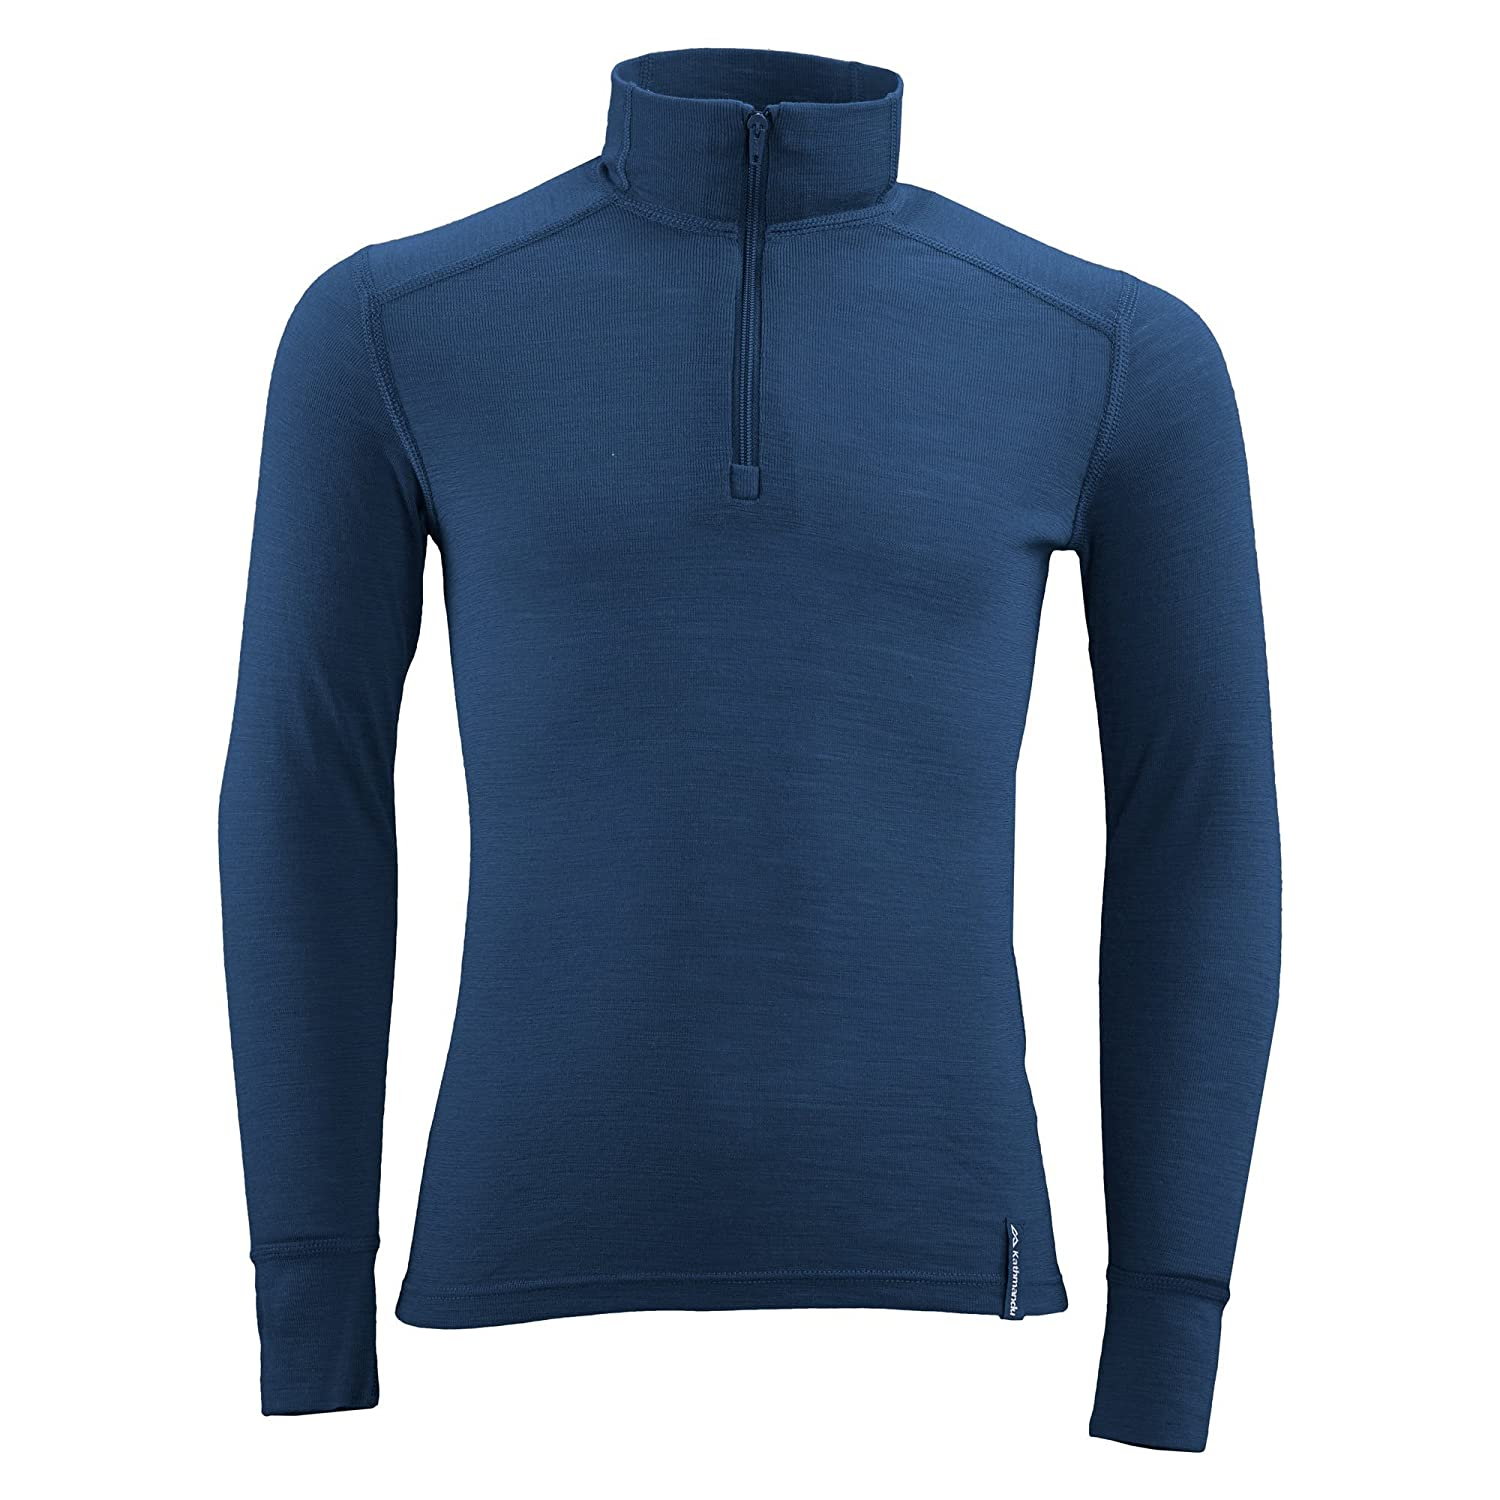 88f734e928 Kathmandu merinoBASE Children Kids  Long Sleeve Thermal Underwear Top   Amazon.com.au  Sports